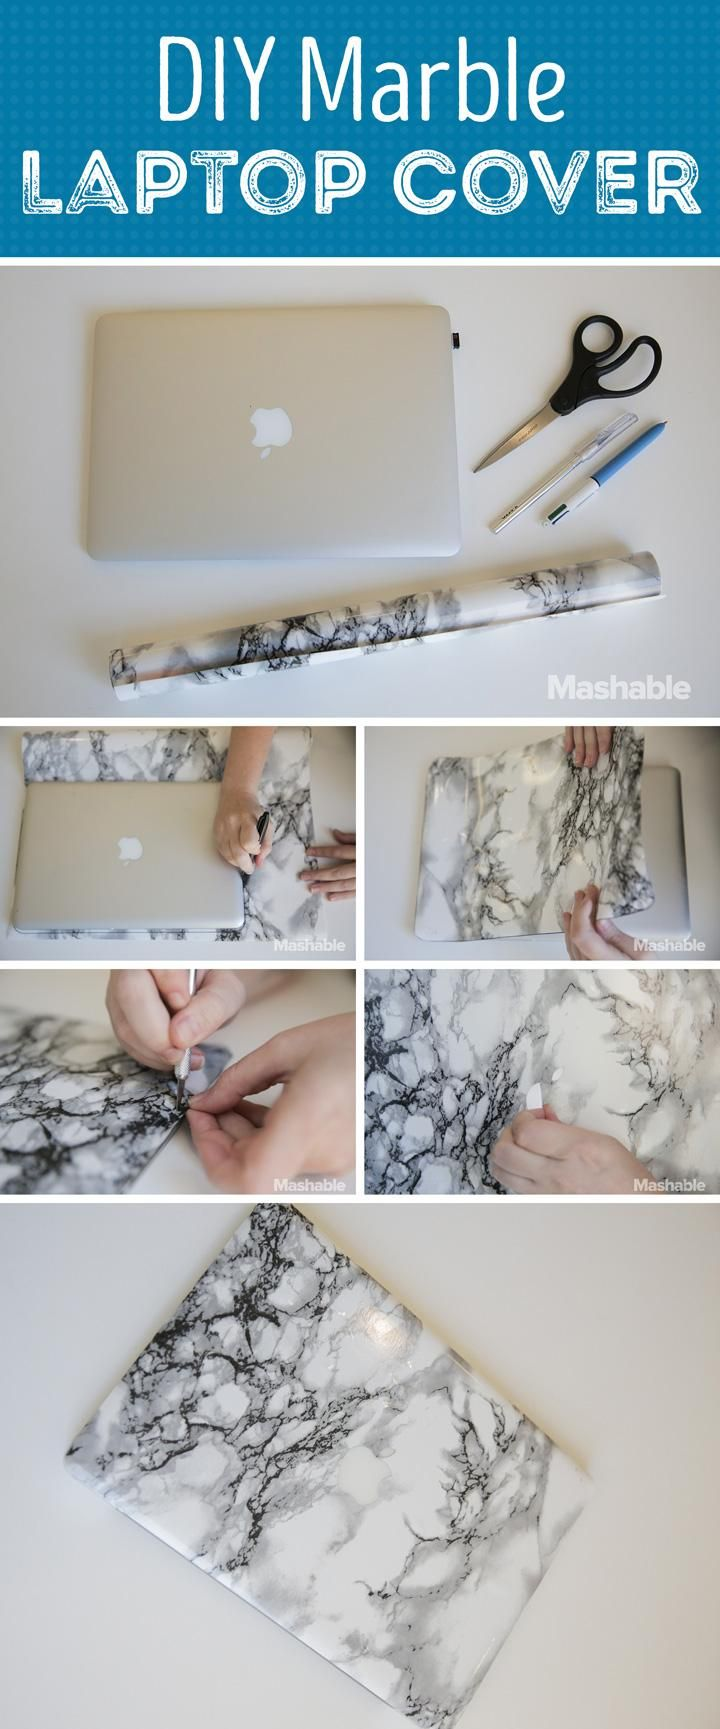 Personalize your computer with this DIY marble laptop cover